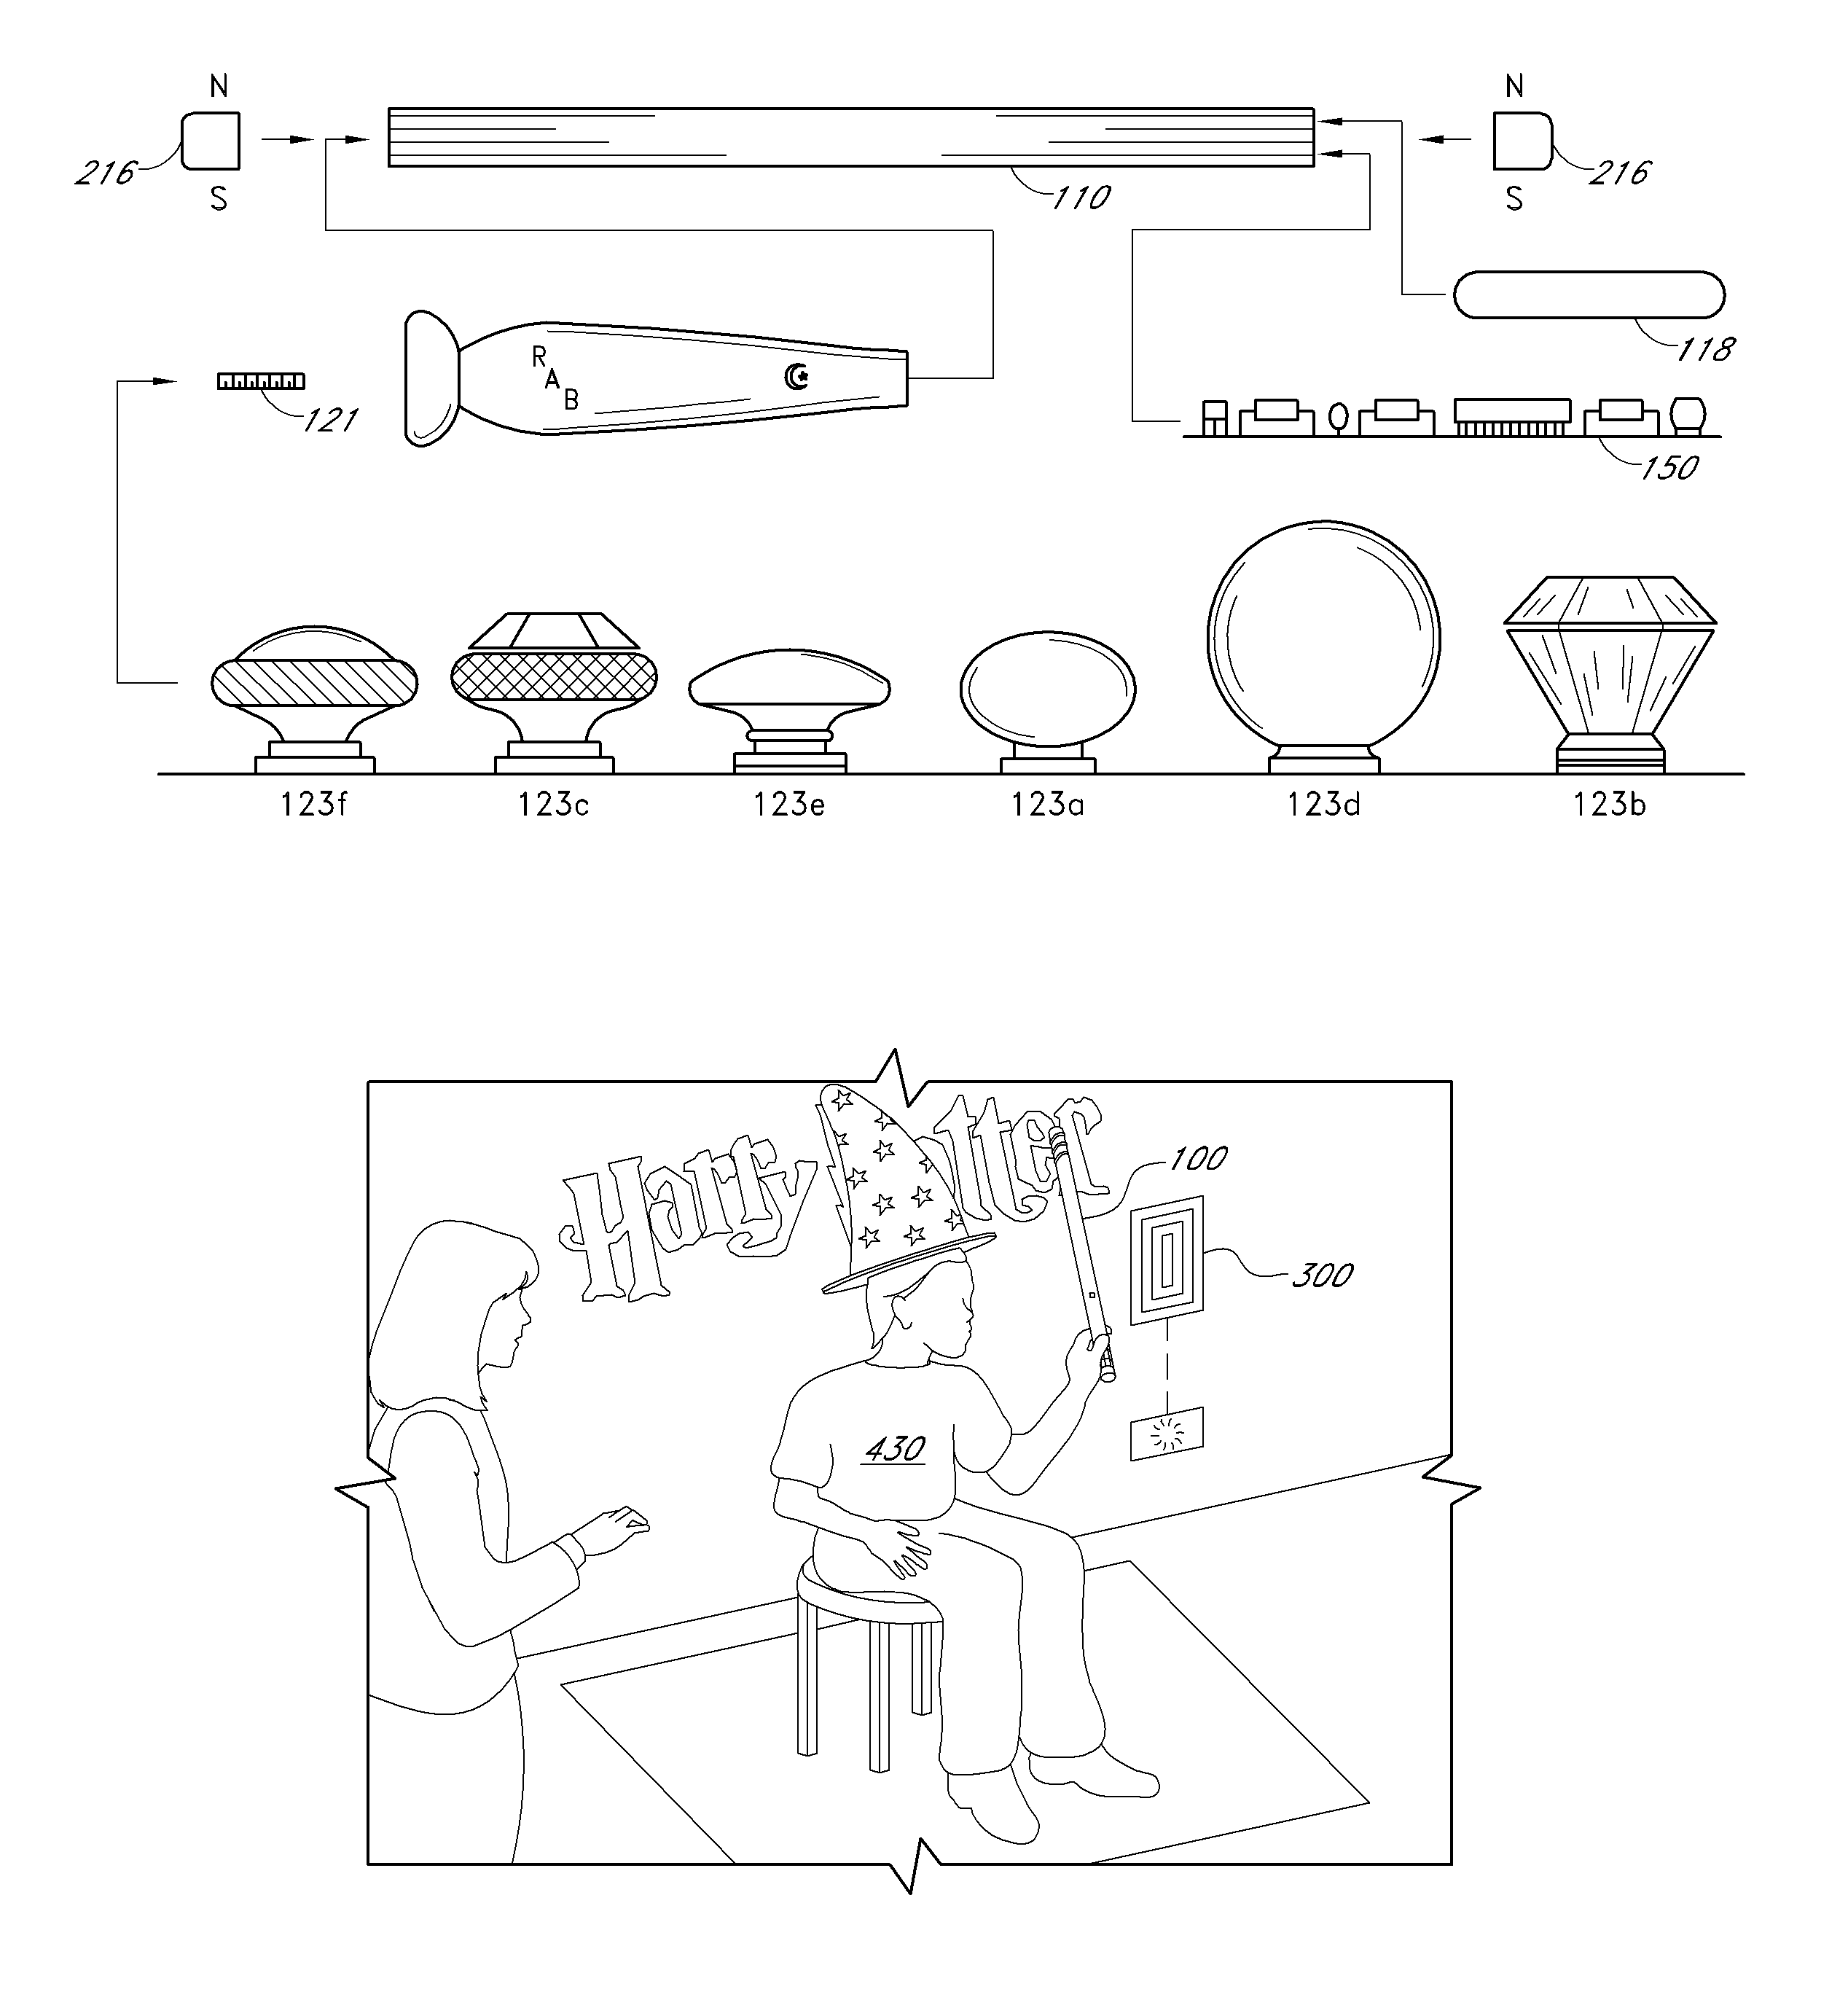 Patent Us 9039533 B2 Infraredled Based Wireless Data Voice Communication With Circuit First Claim